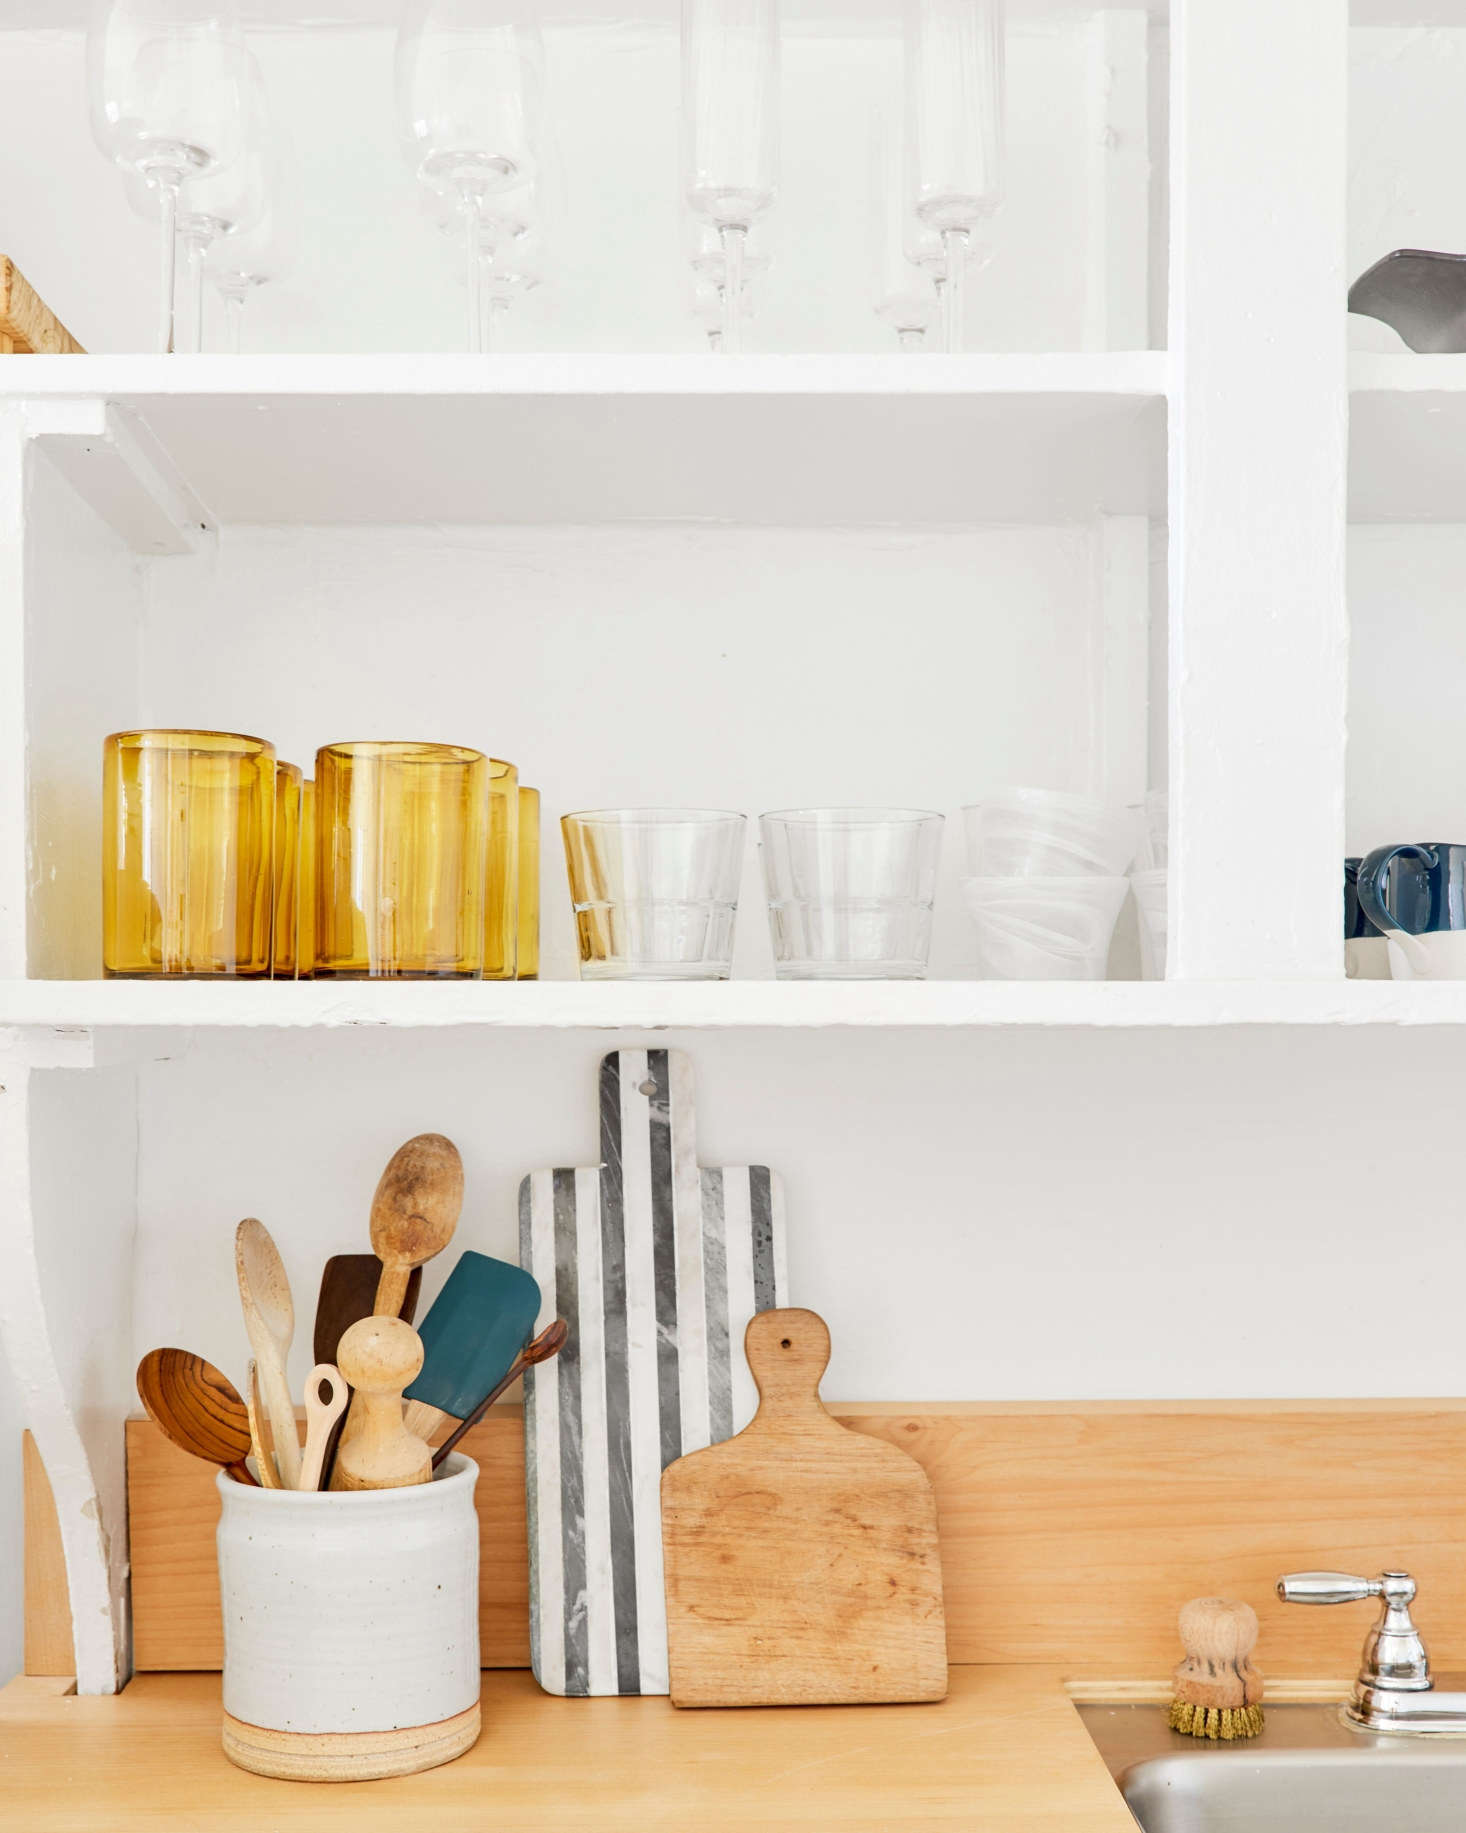 """Jessica didn't have to do much to the kitchen cabinets. """"I just replaced the hardware on the lower cabinetry, but the uppers came that way! When I looked at the place for the first time, my heart stopped when I saw all the open shelving. In my head I thought it was the perfect excuse to buy only beautifulkitchenwaressince they would be on display all day, every day,"""" she says."""